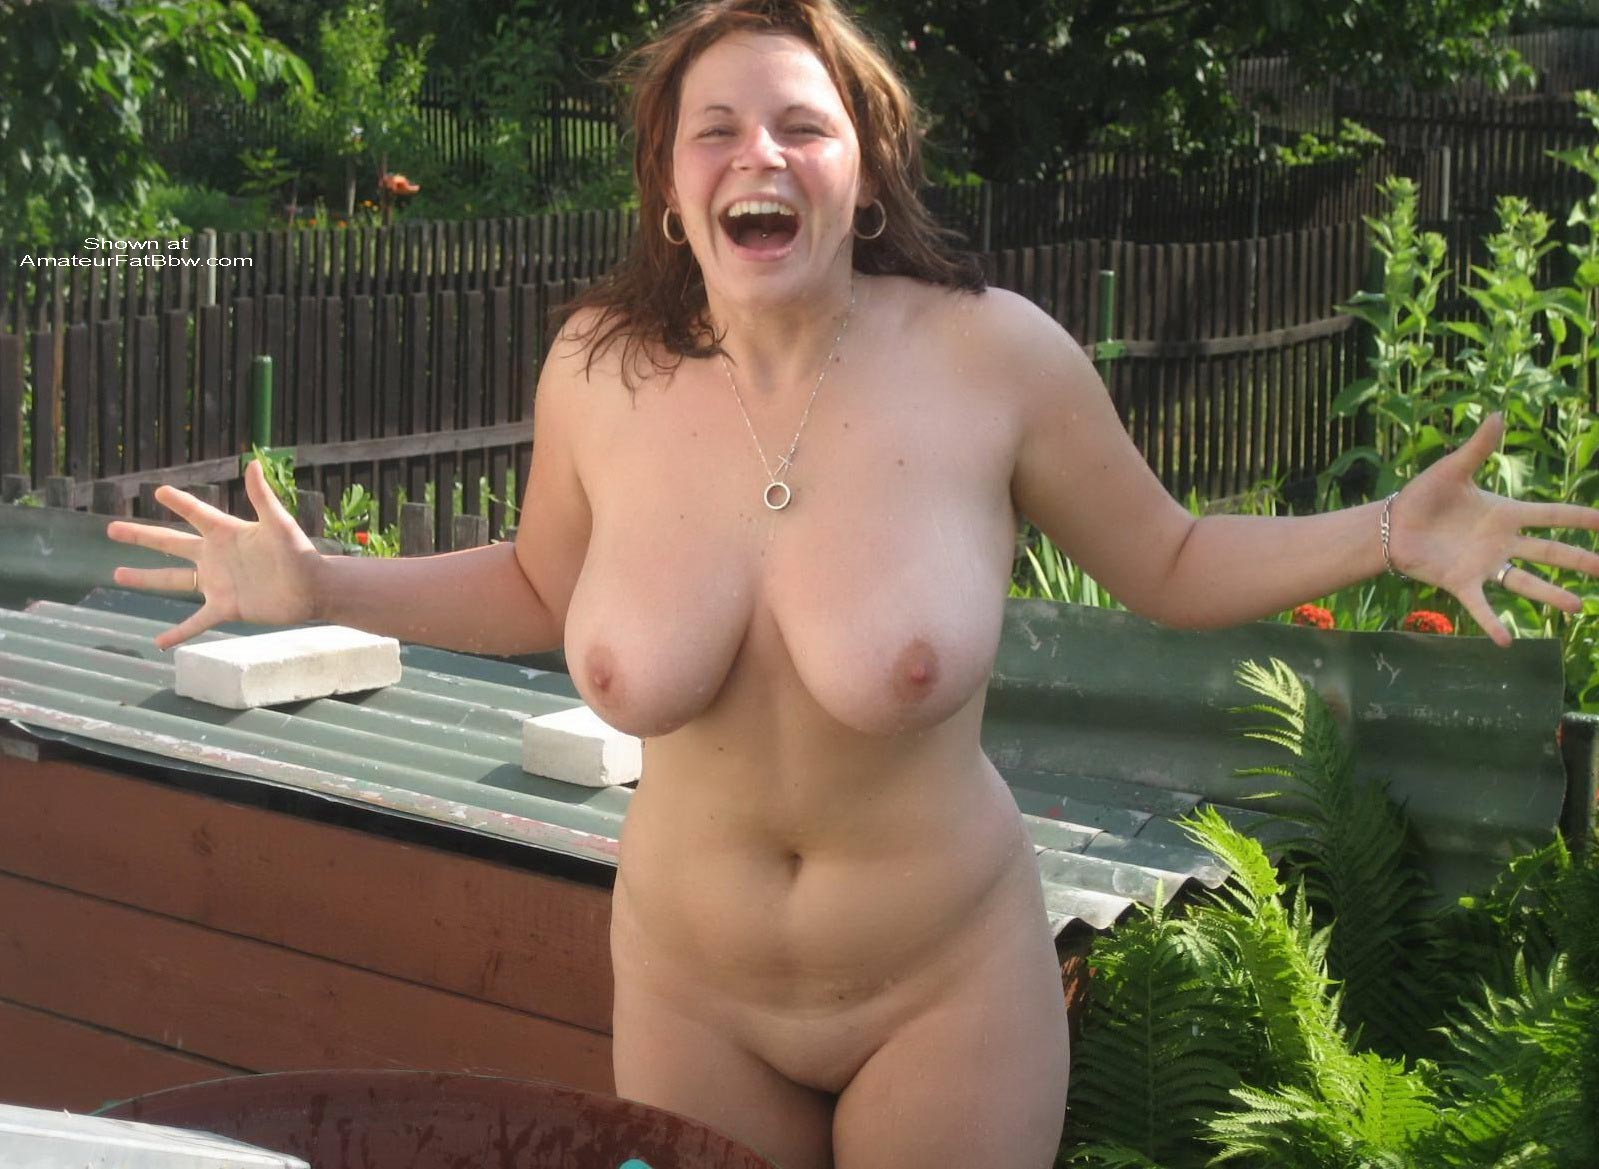 Piace Amateur big titty videos this one